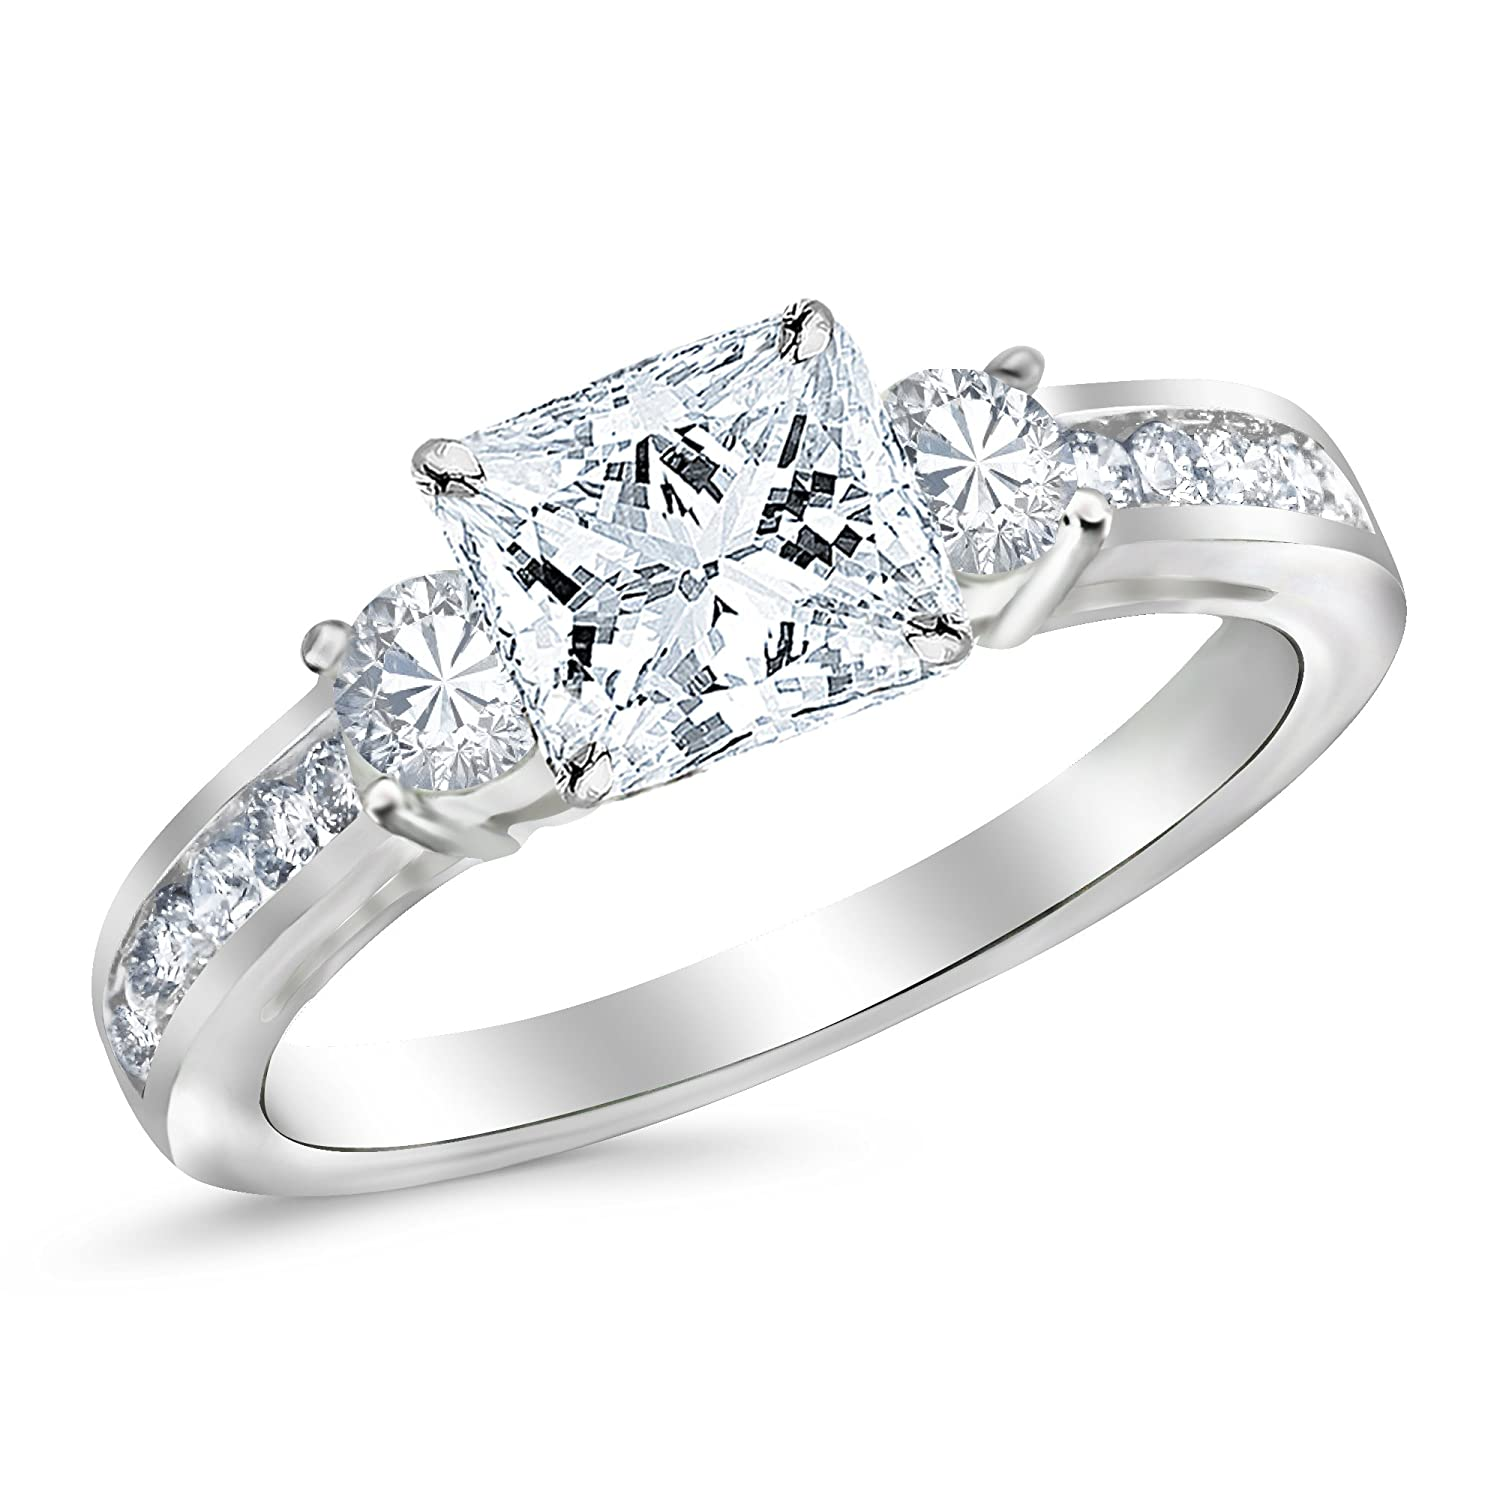 1 11 Carat 3 Stone Channel Set Princess Cut Diamond Engagement Ring With A 0 50 Carat Gia Certified Princess Cut J Color Vs2 Si1 Clarity Center Stone